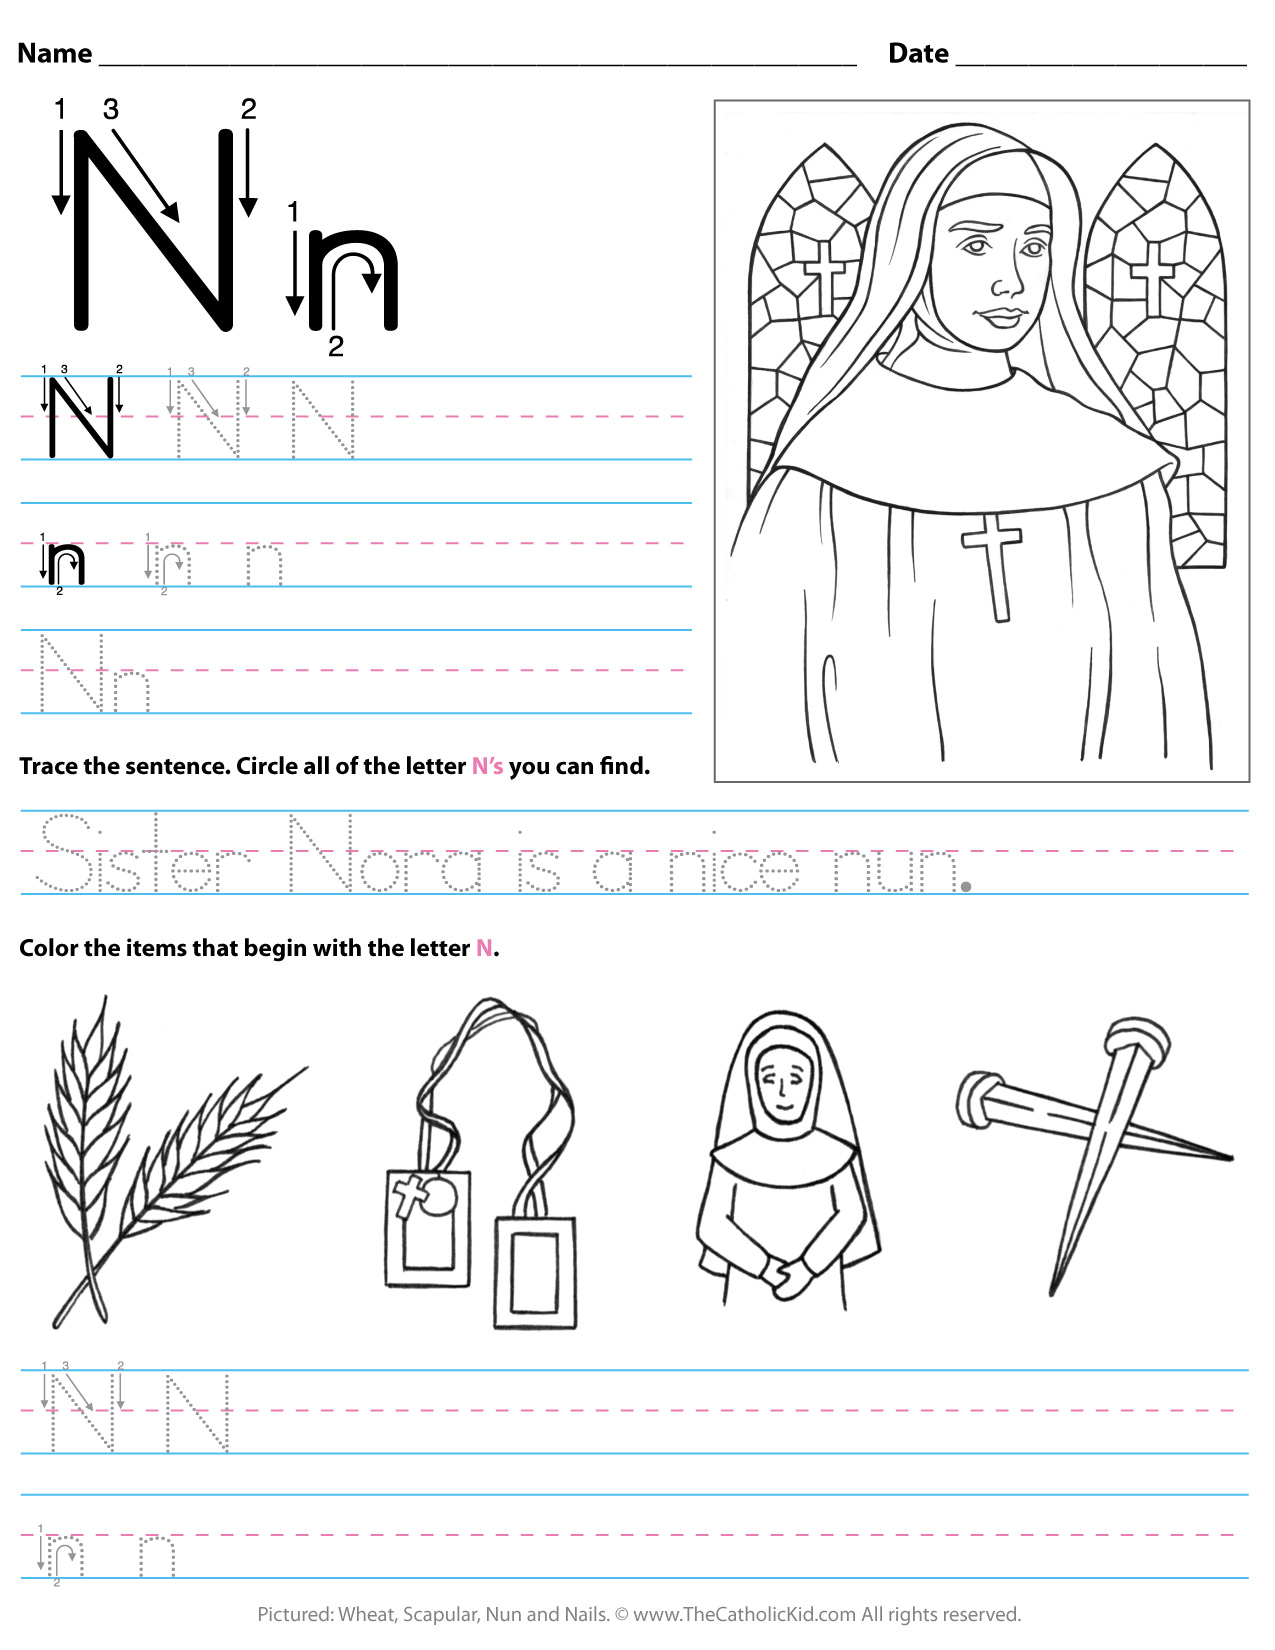 Catholic Alphabet Letter N Worksheet Preschool Kindergarten with Letter N Worksheets For Kindergarten